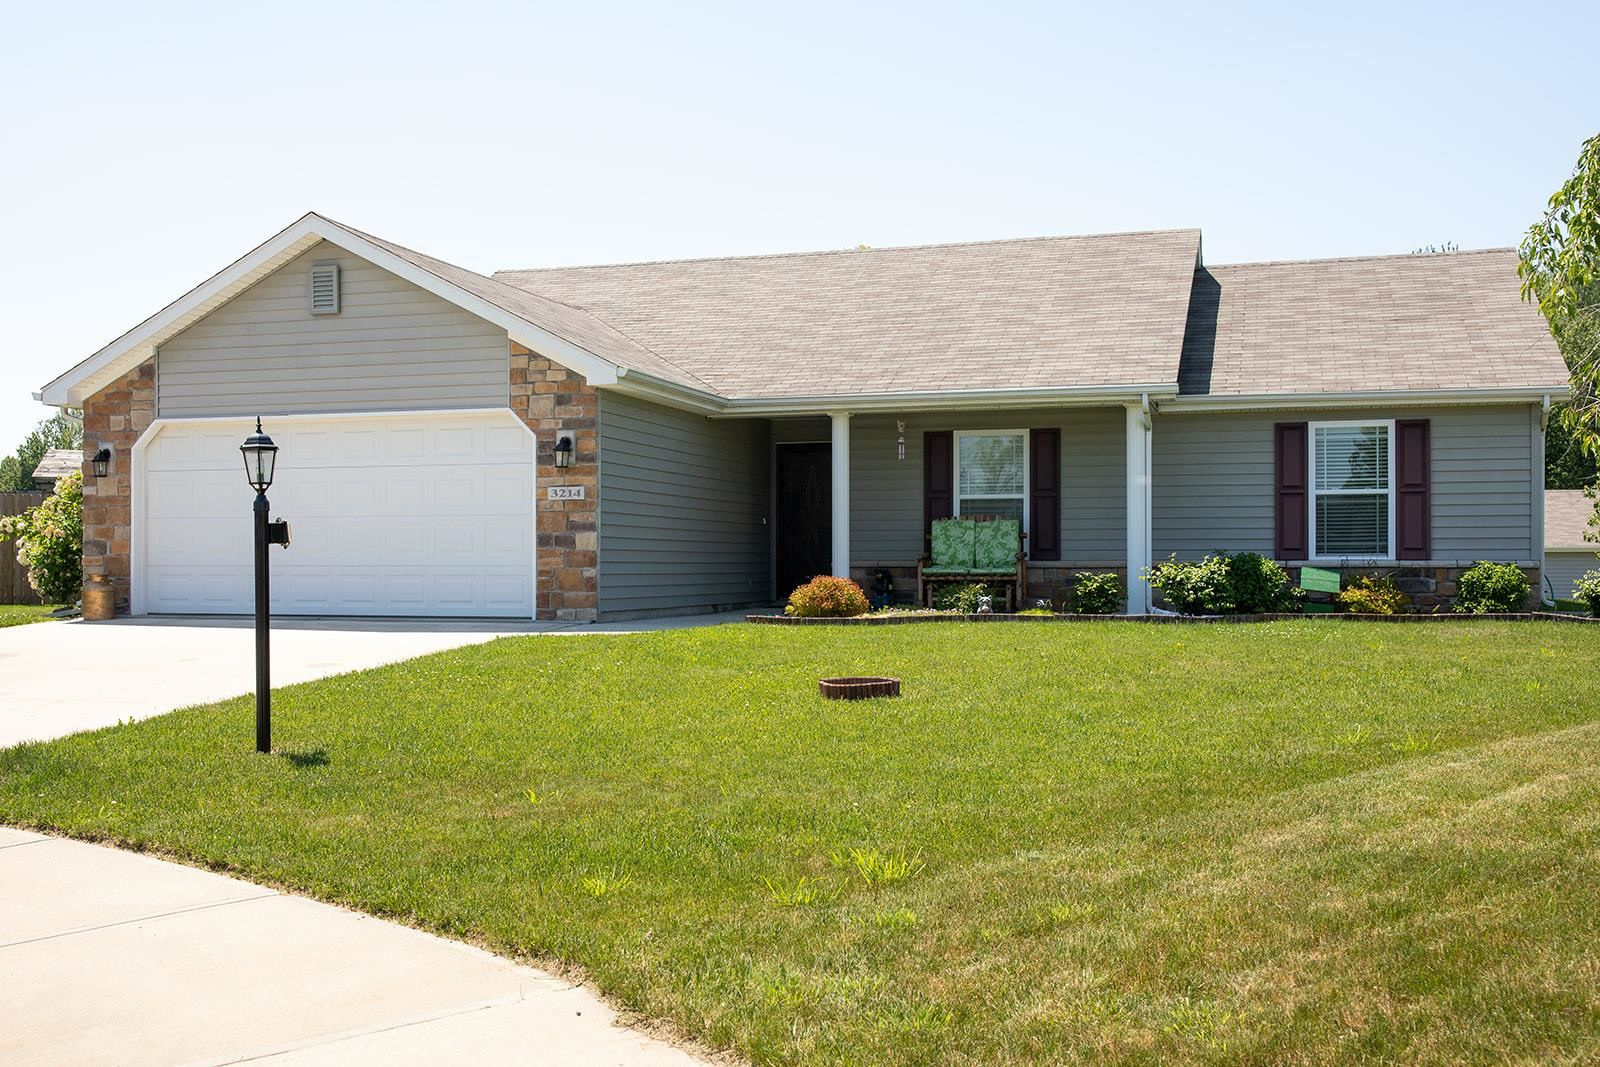 Photo of 3214 Fawn Court, Warsaw, IN 46582 (MLS # 202020510)